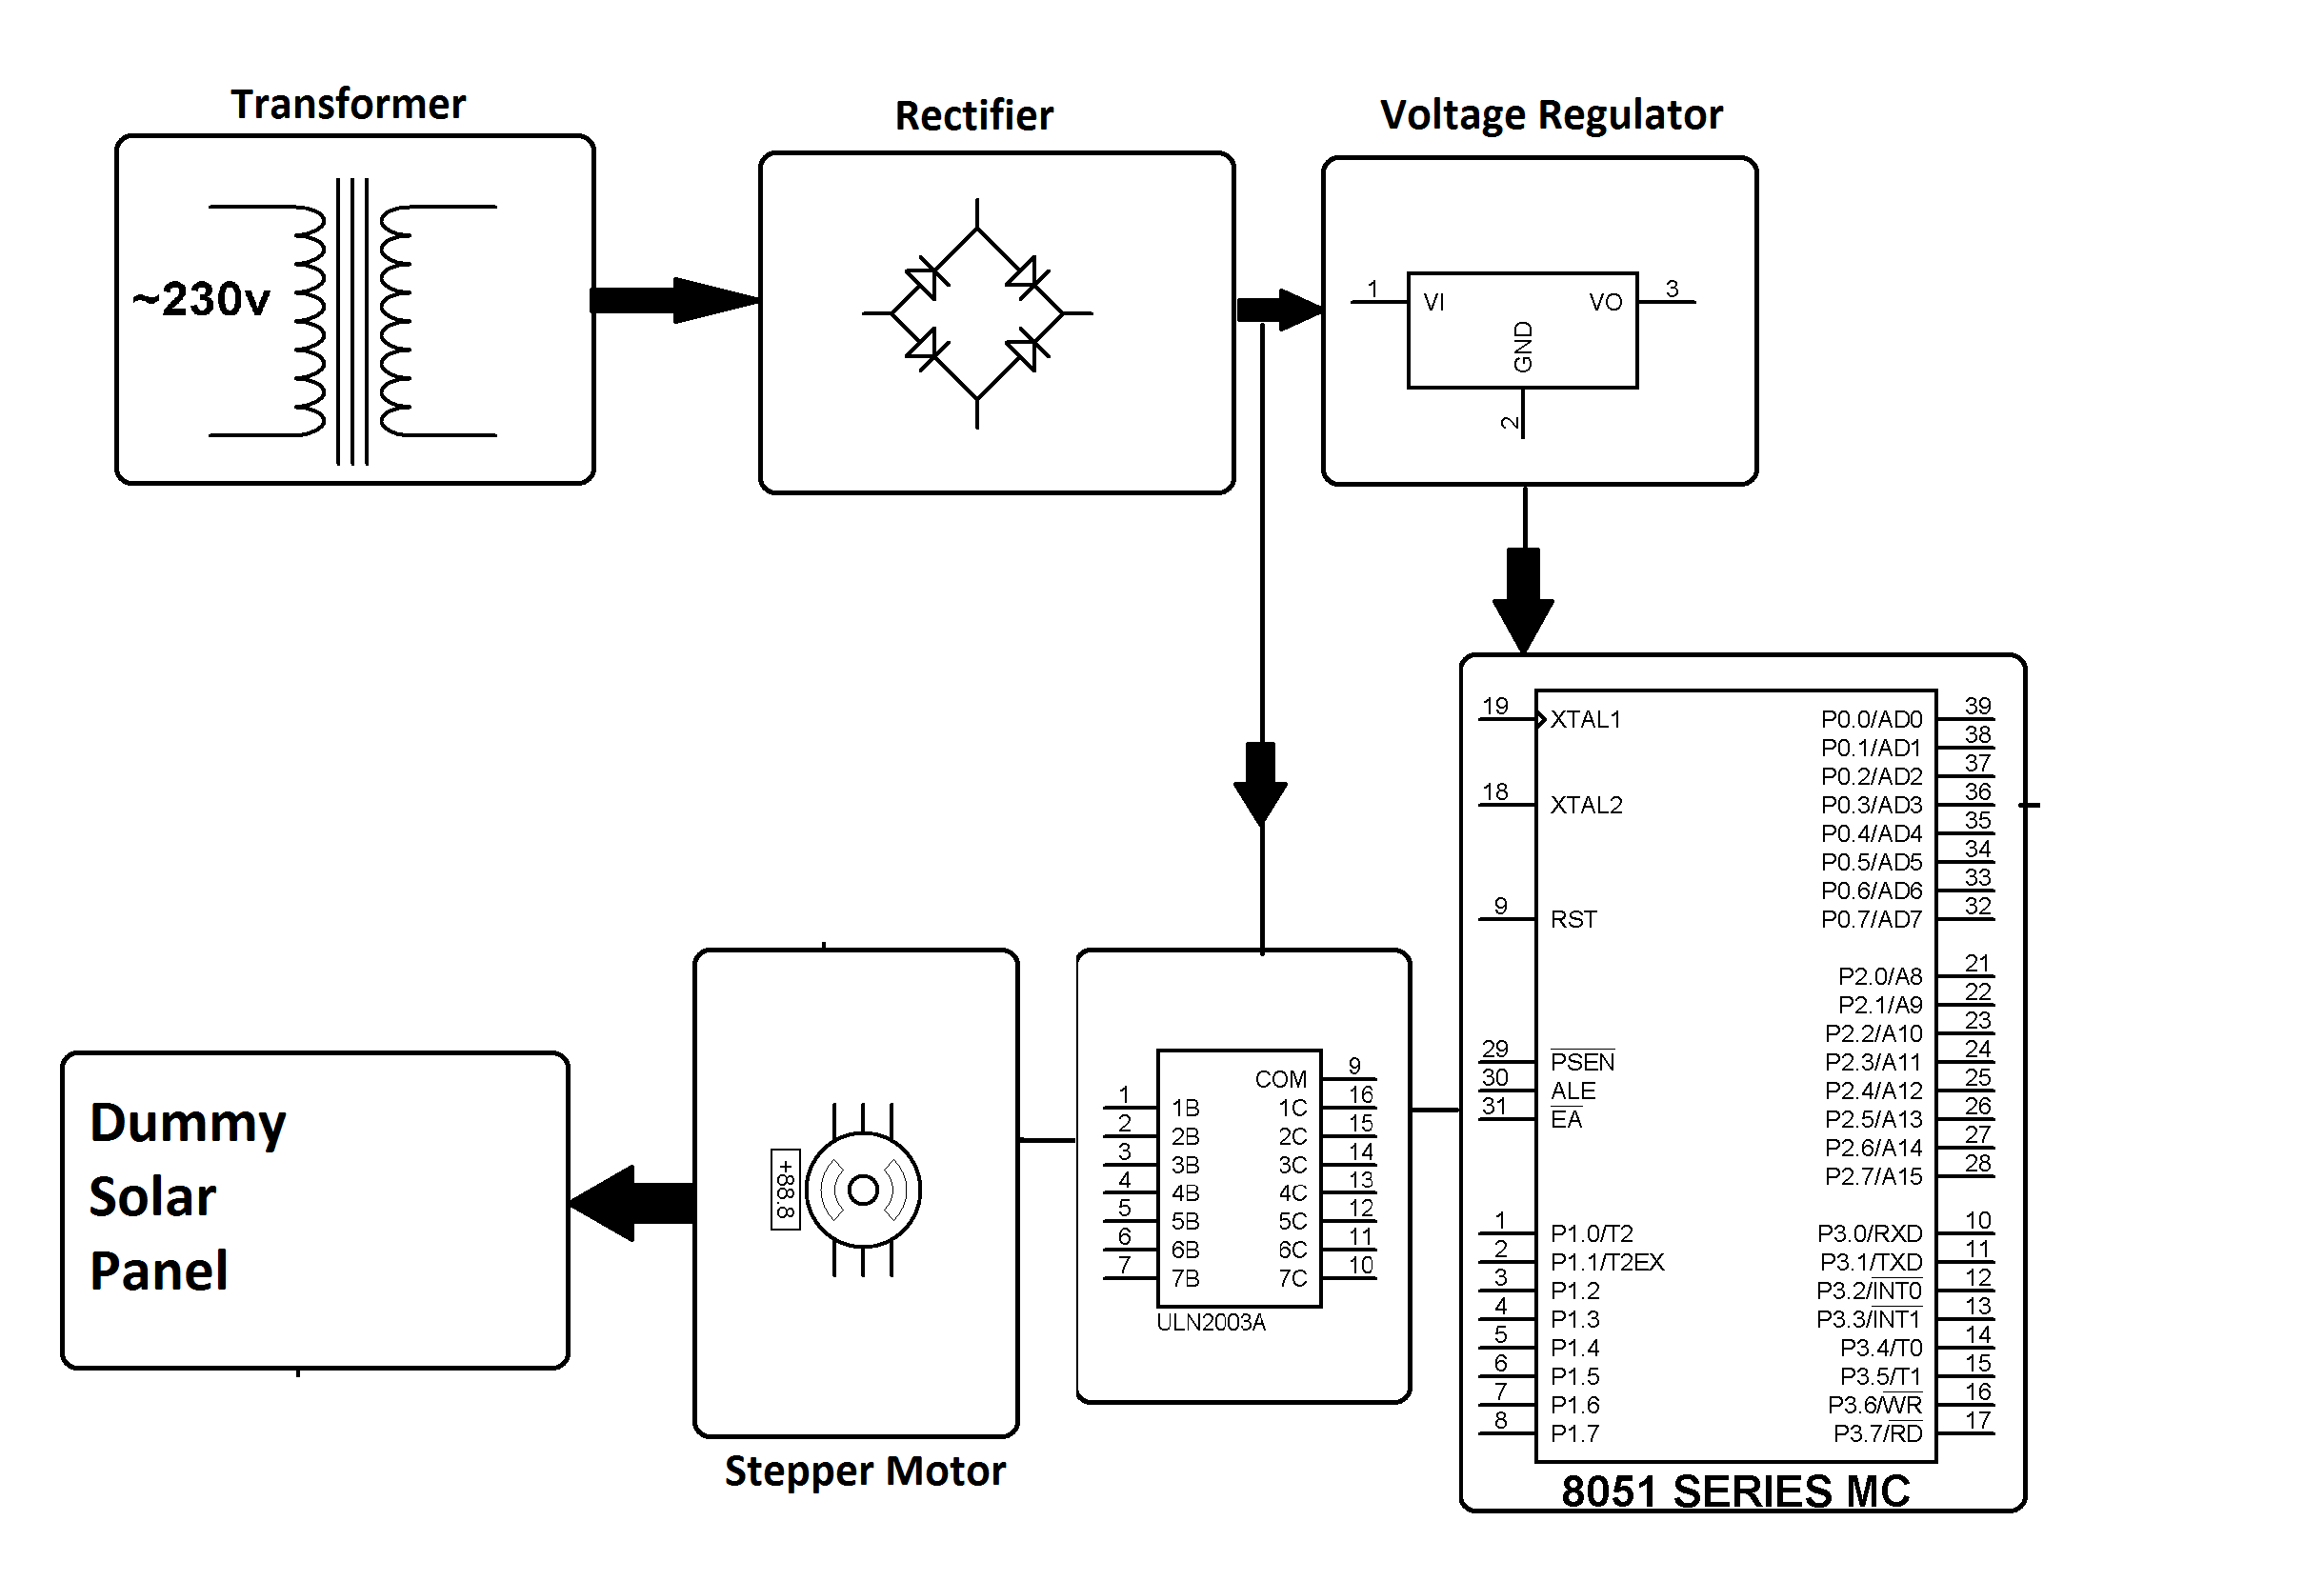 Solar Panel Block Diagram